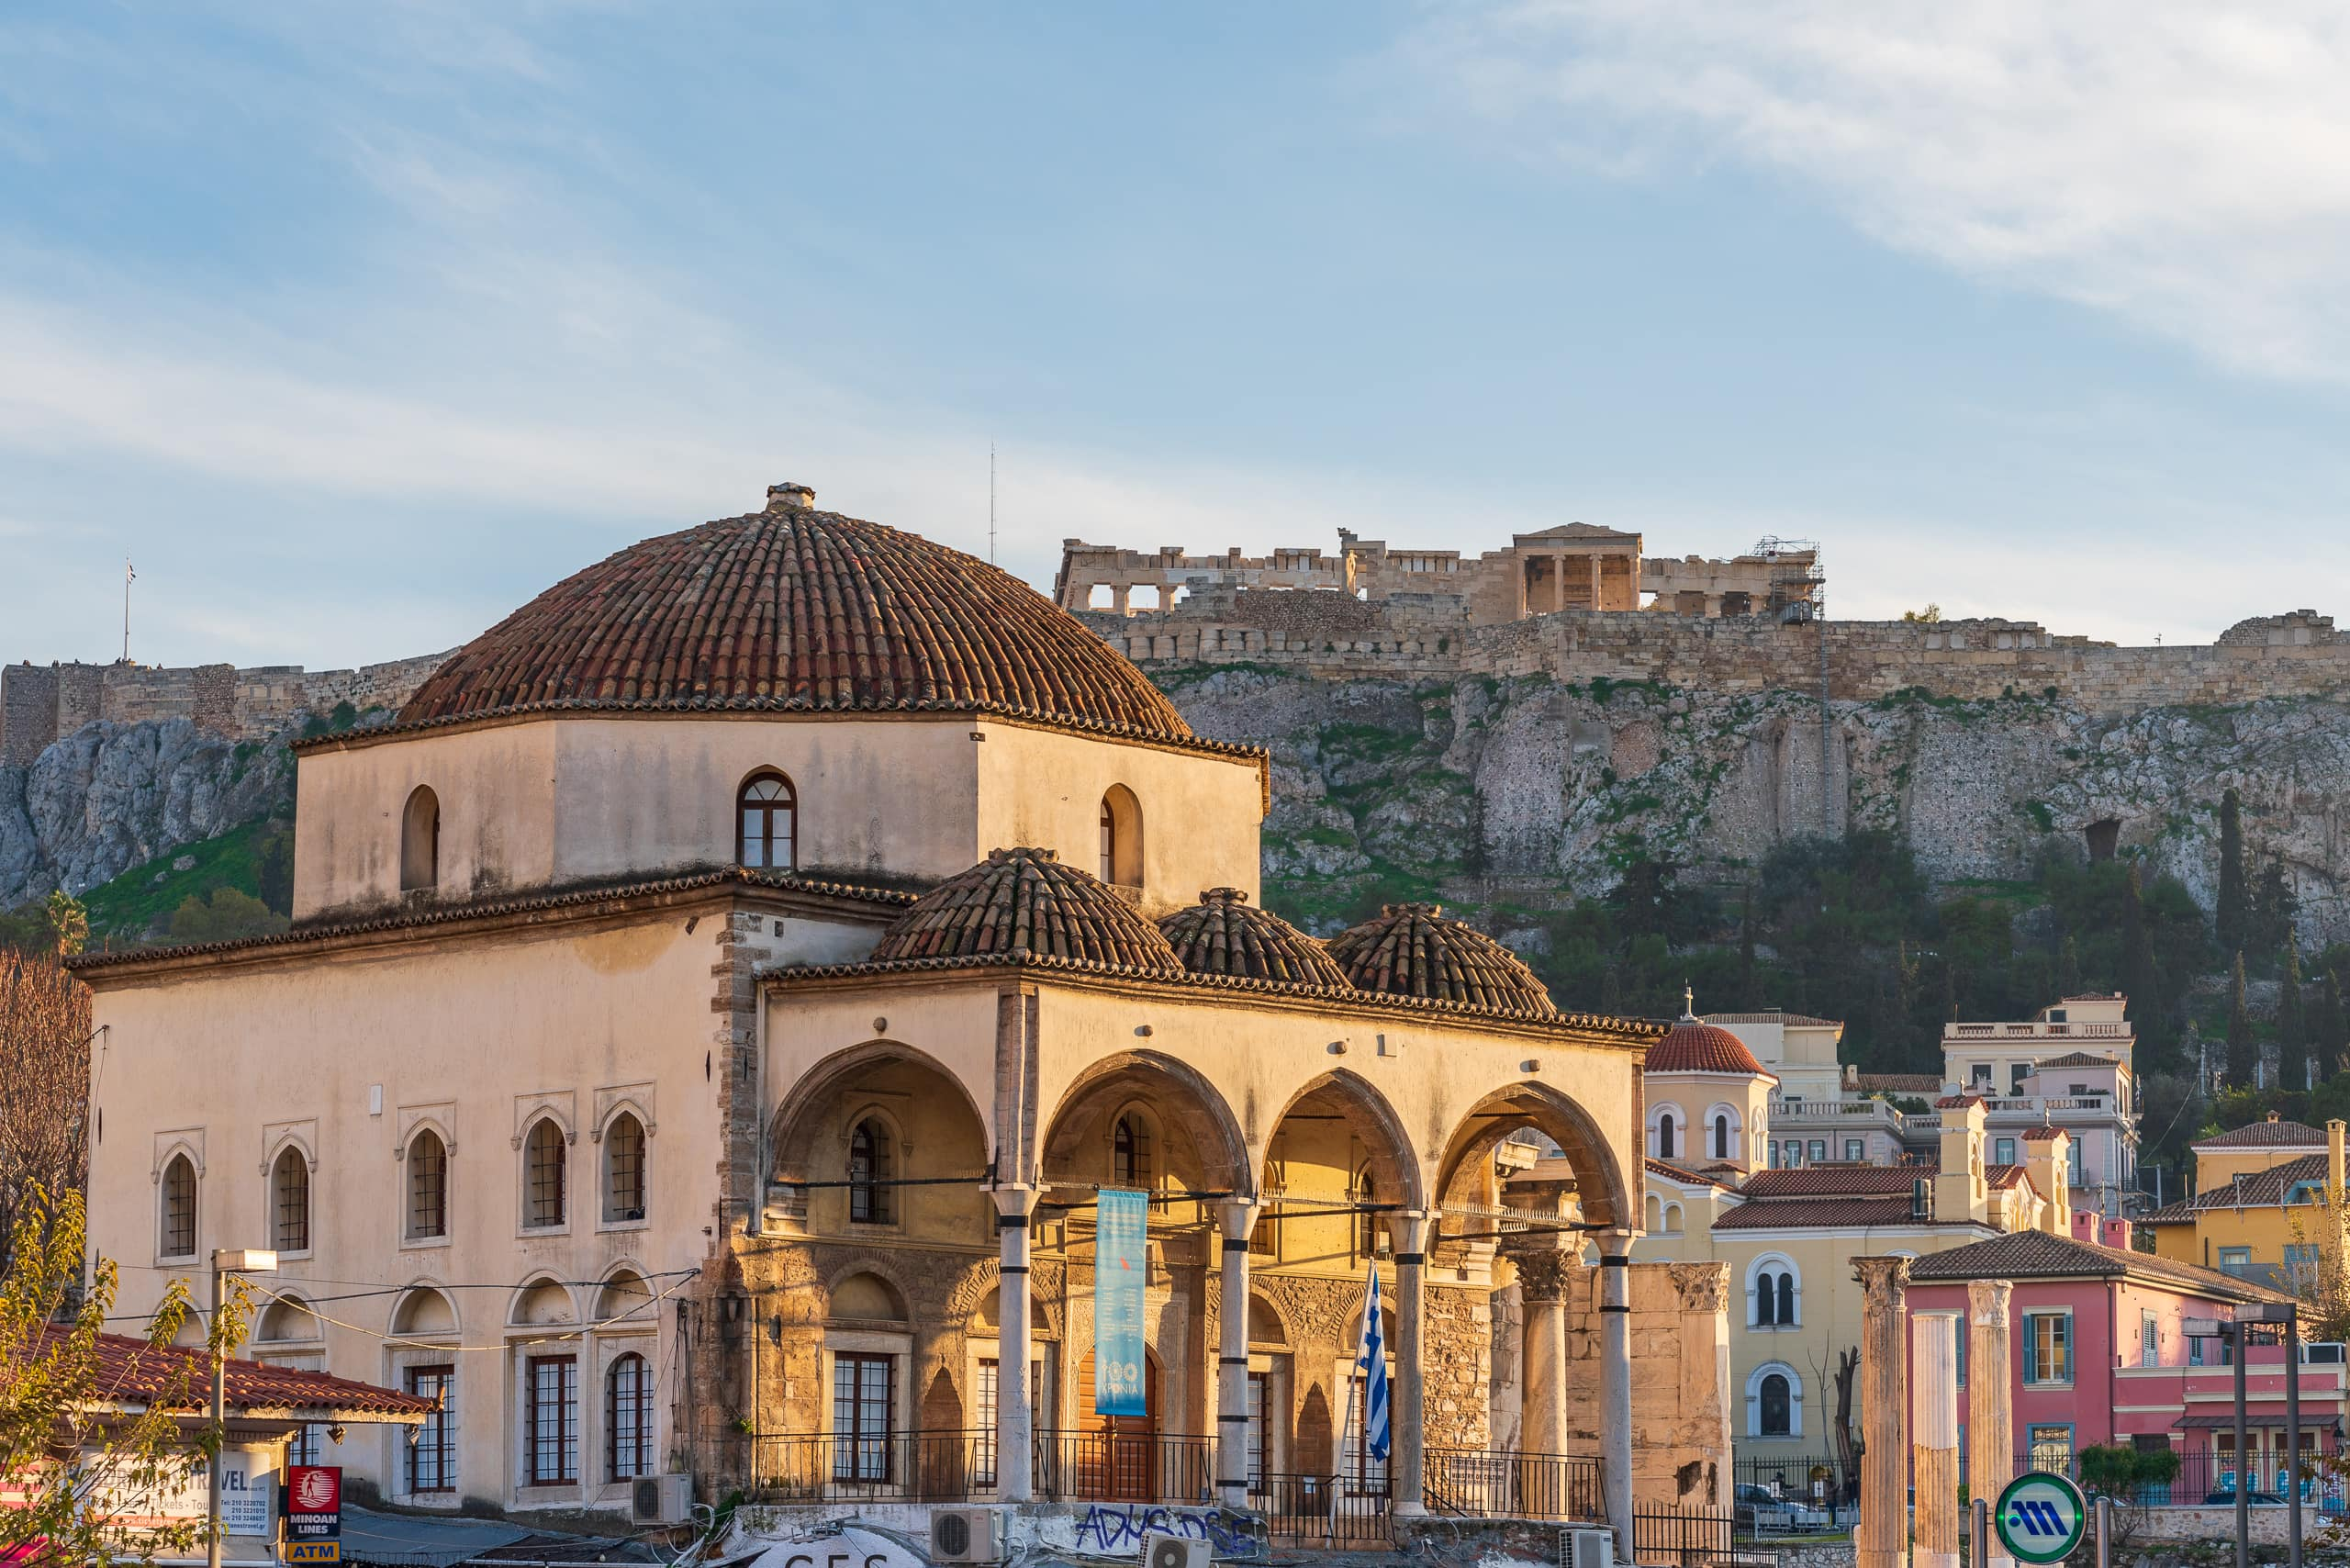 View towards Parthenon from Monastiraki Square